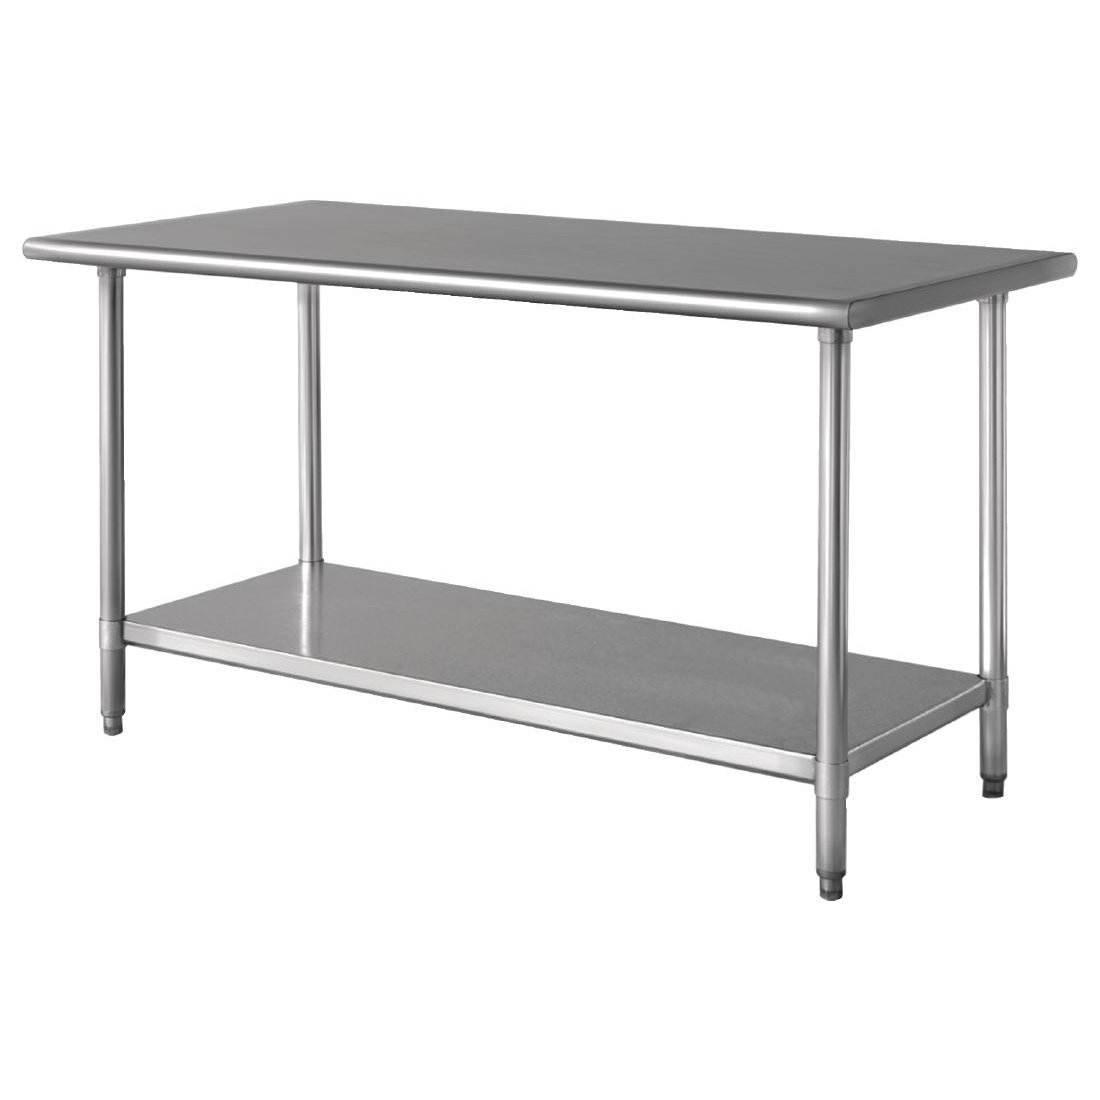 Commercial Kitchen Work Table Stainless Steel 35(H)x 72(W)x 24(D)\